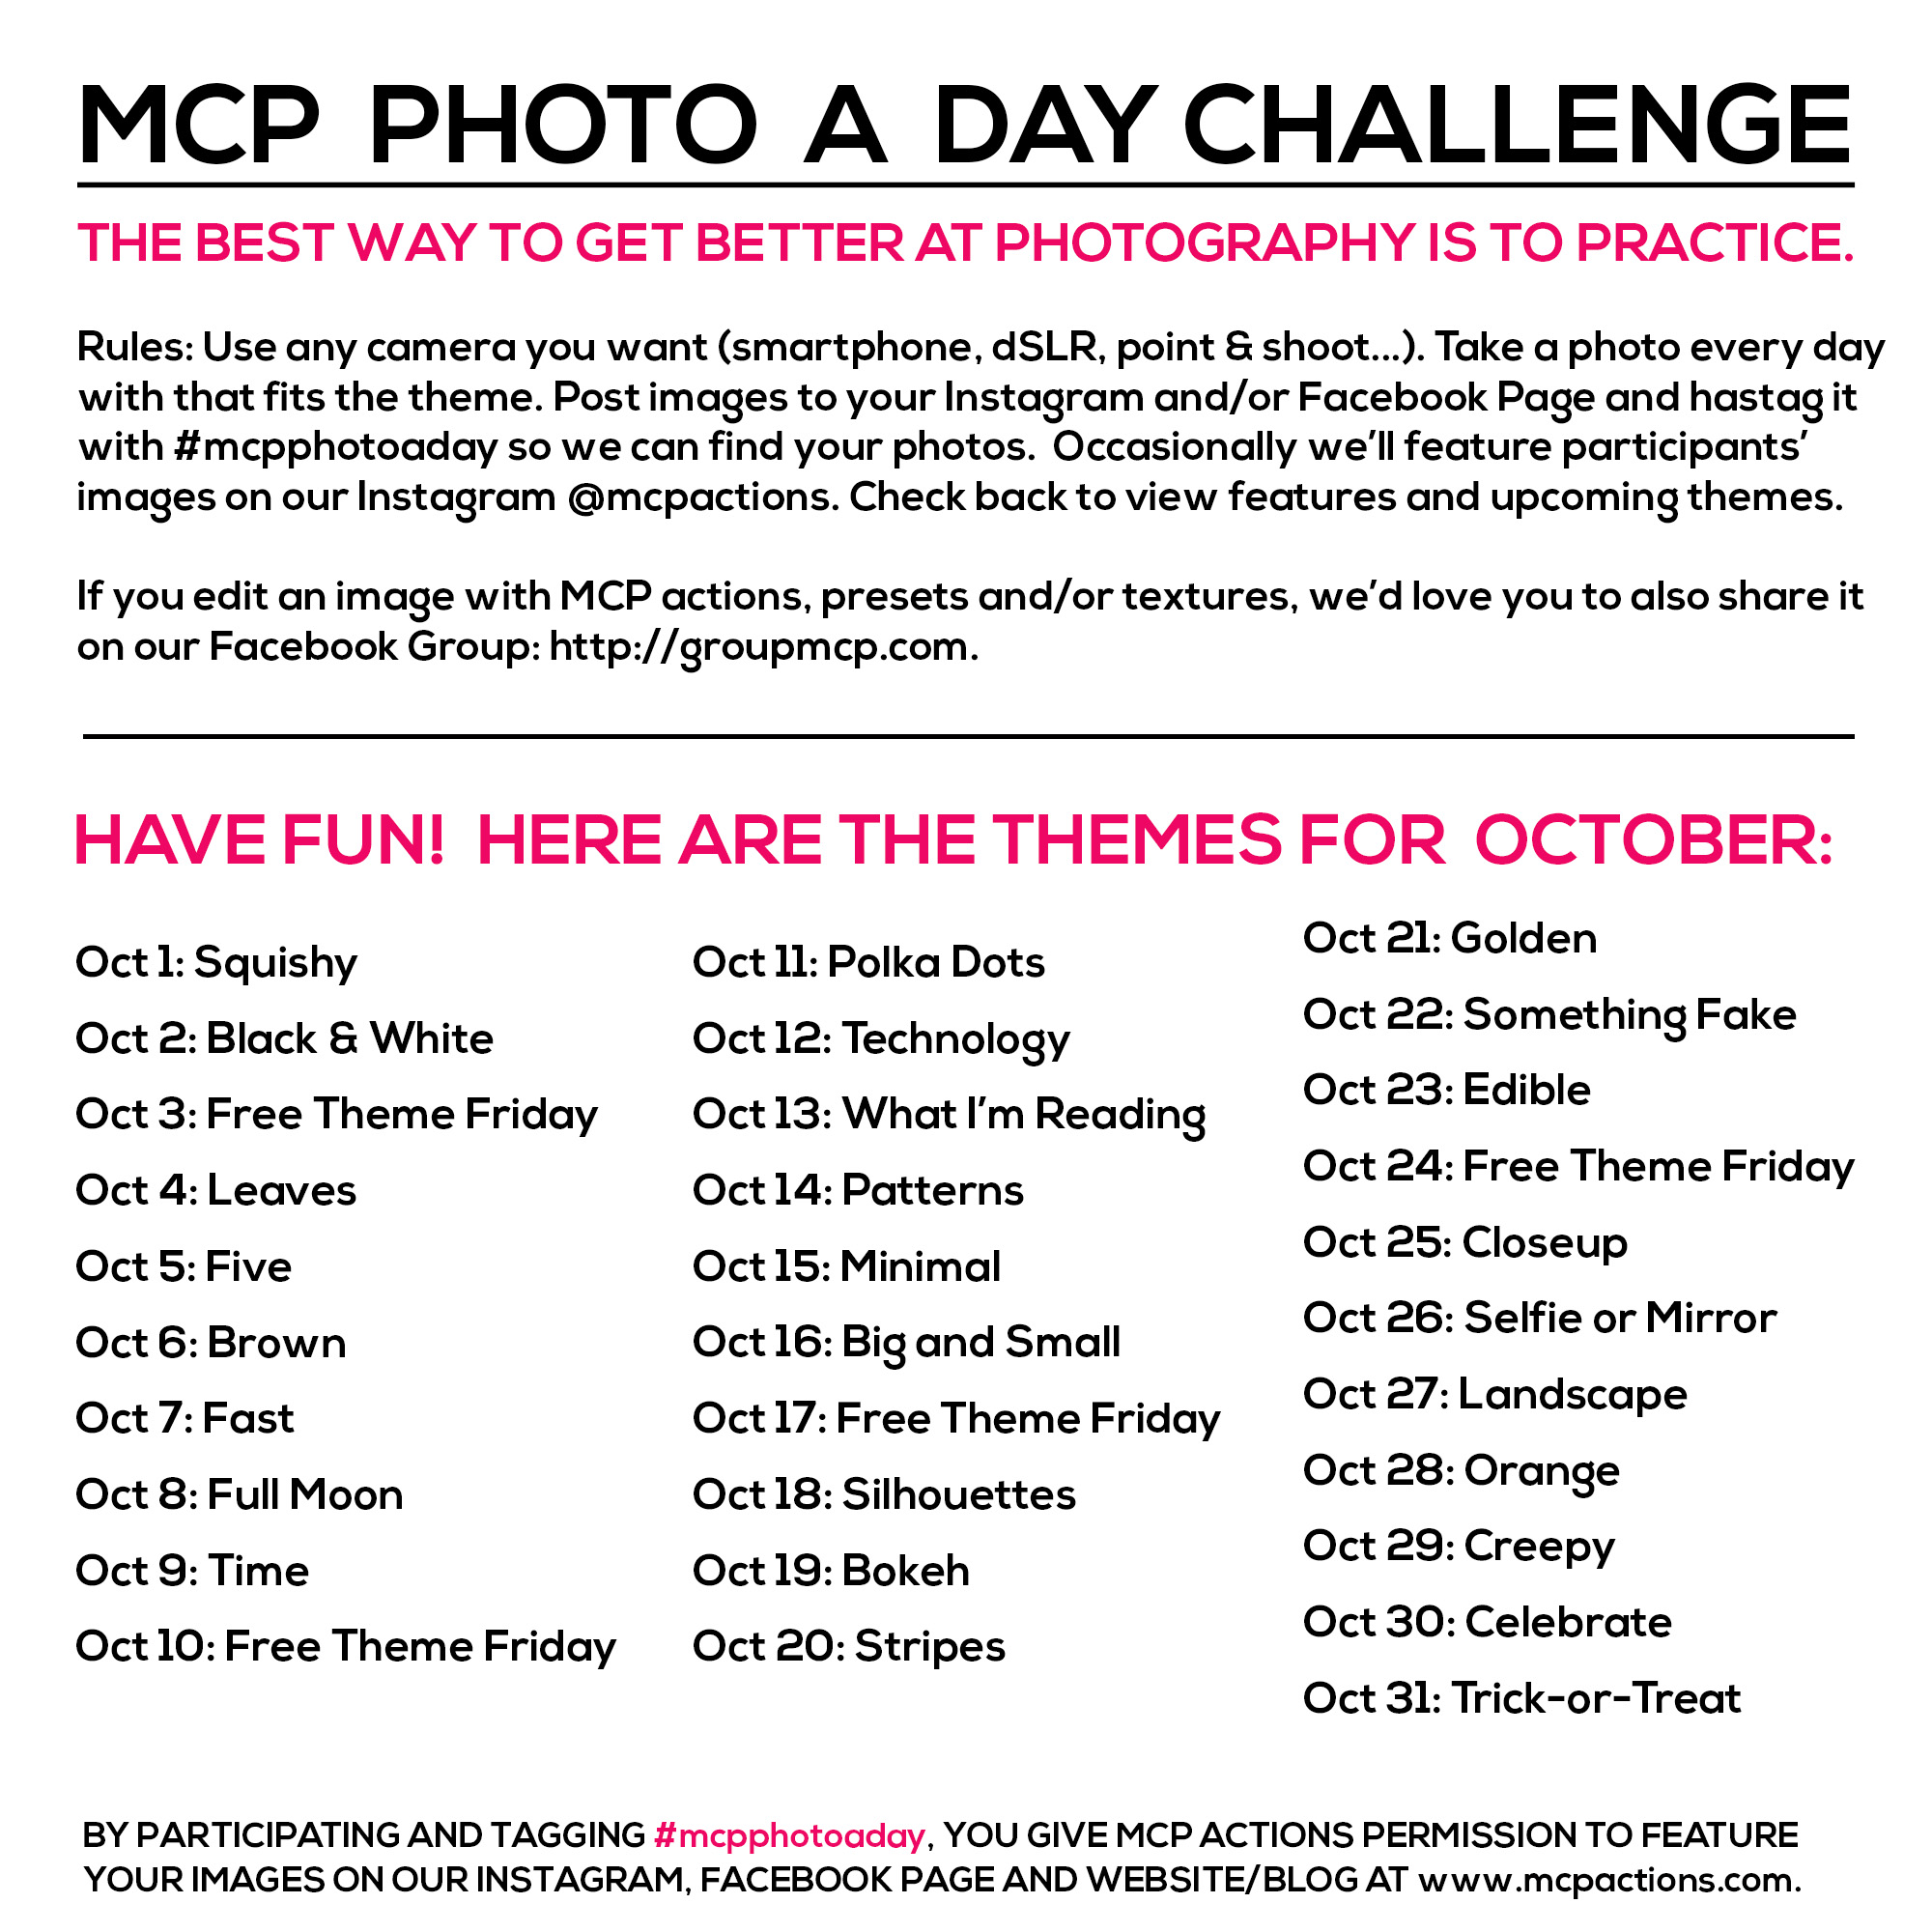 mcpphotoaday-october MCP Photo A Day Challenge: October Themes Activities Announcements Assignments